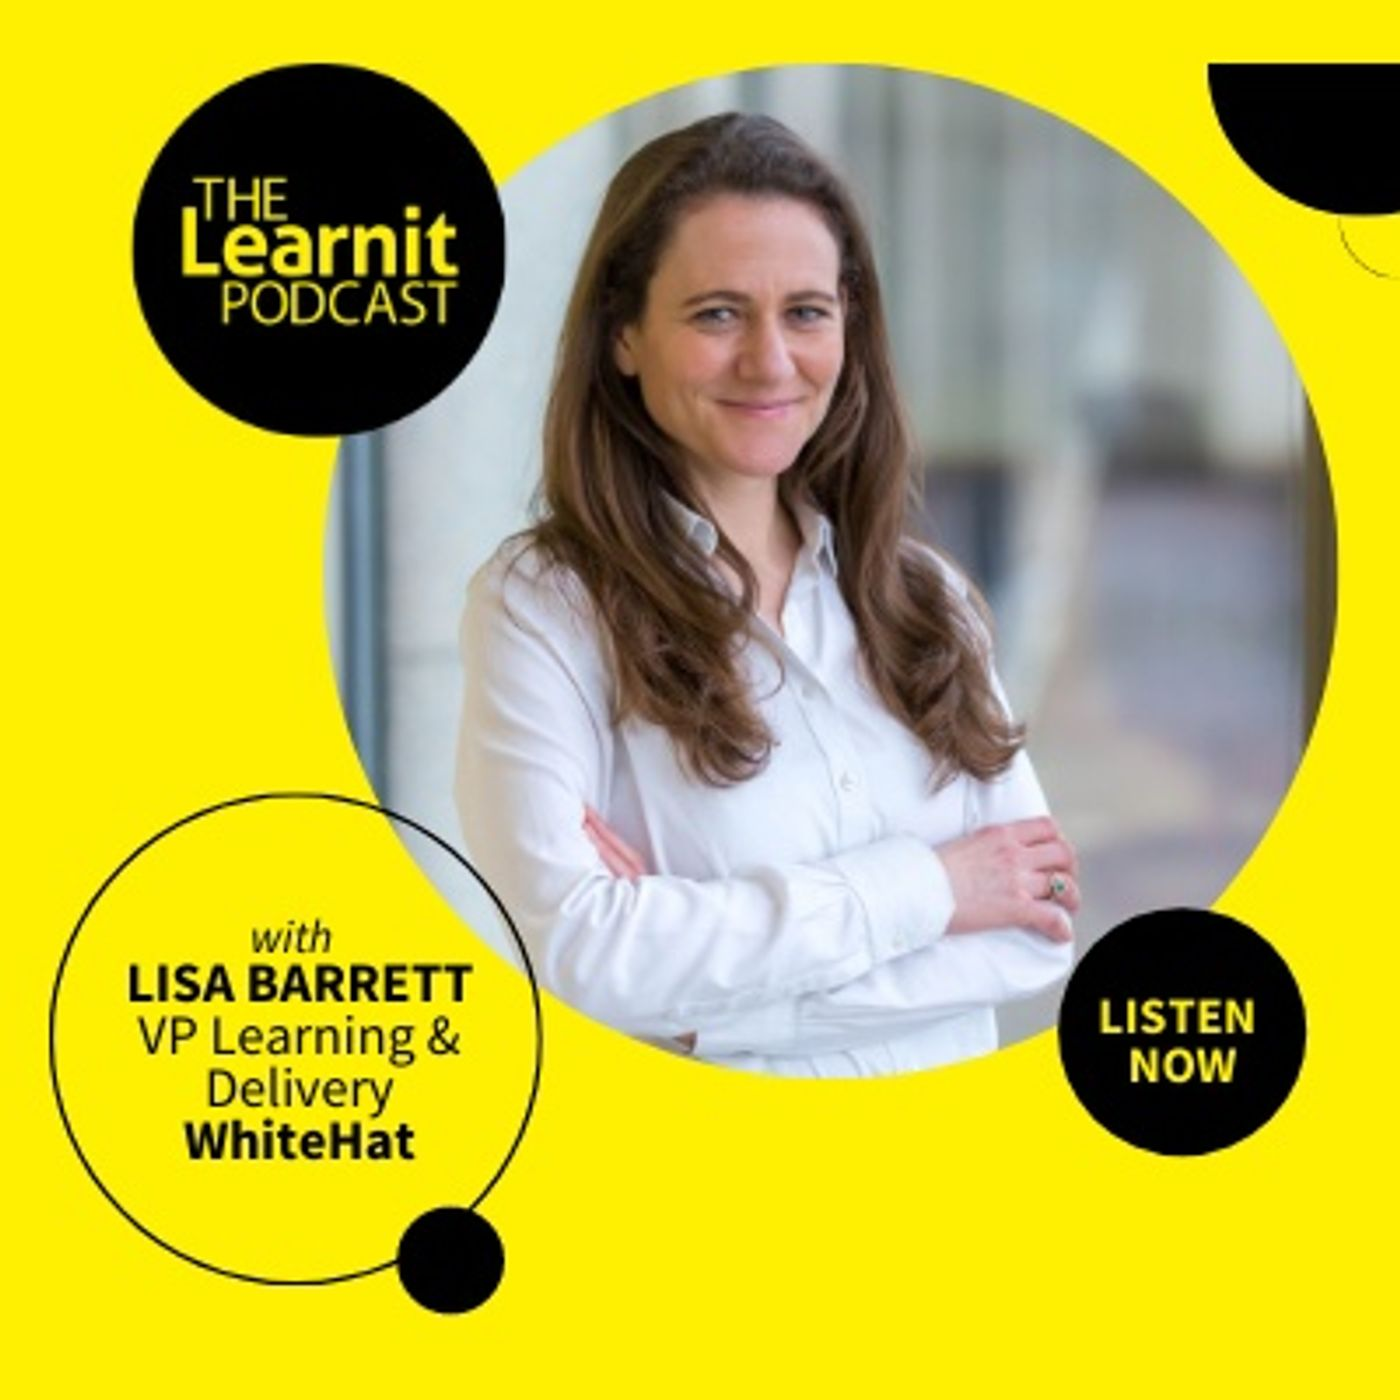 #7 Lisa Barrett, WhiteHat: Revolutionising Apprenticeships to Provide an Equal Alternative to University